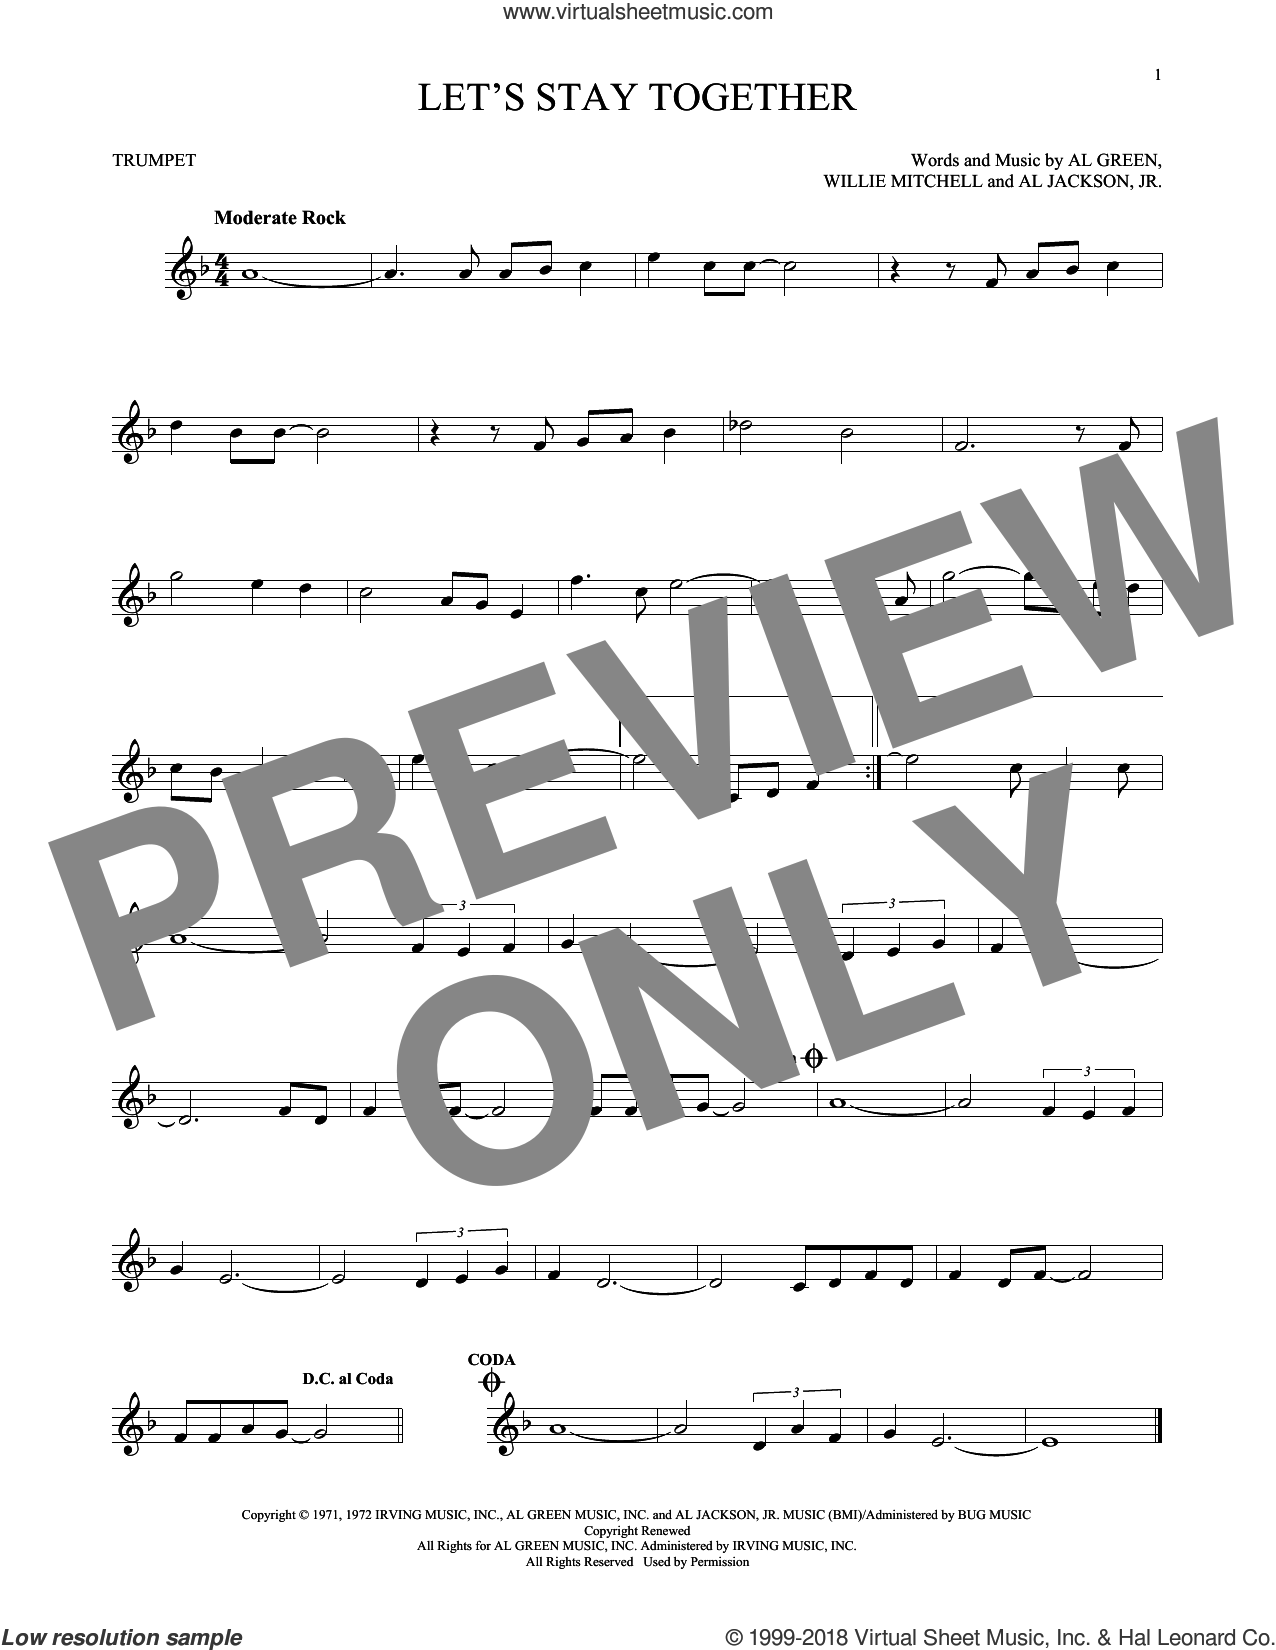 Let's Stay Together sheet music for trumpet solo by Willie Mitchell